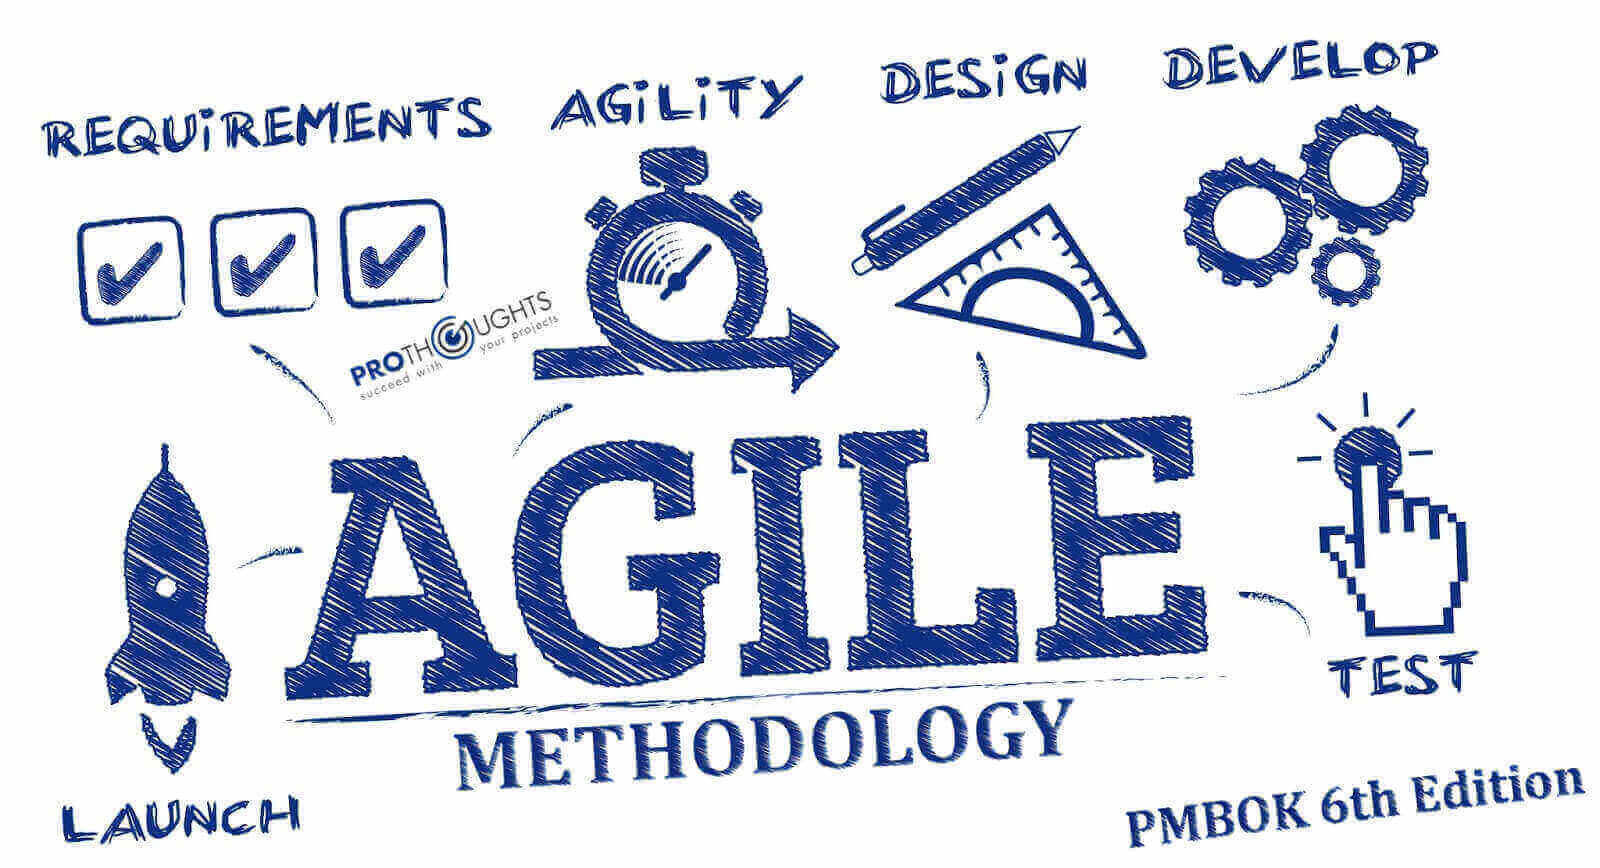 The Agile and Waterfall – Does PMBoK 6th Edition addresses Agile methodology?